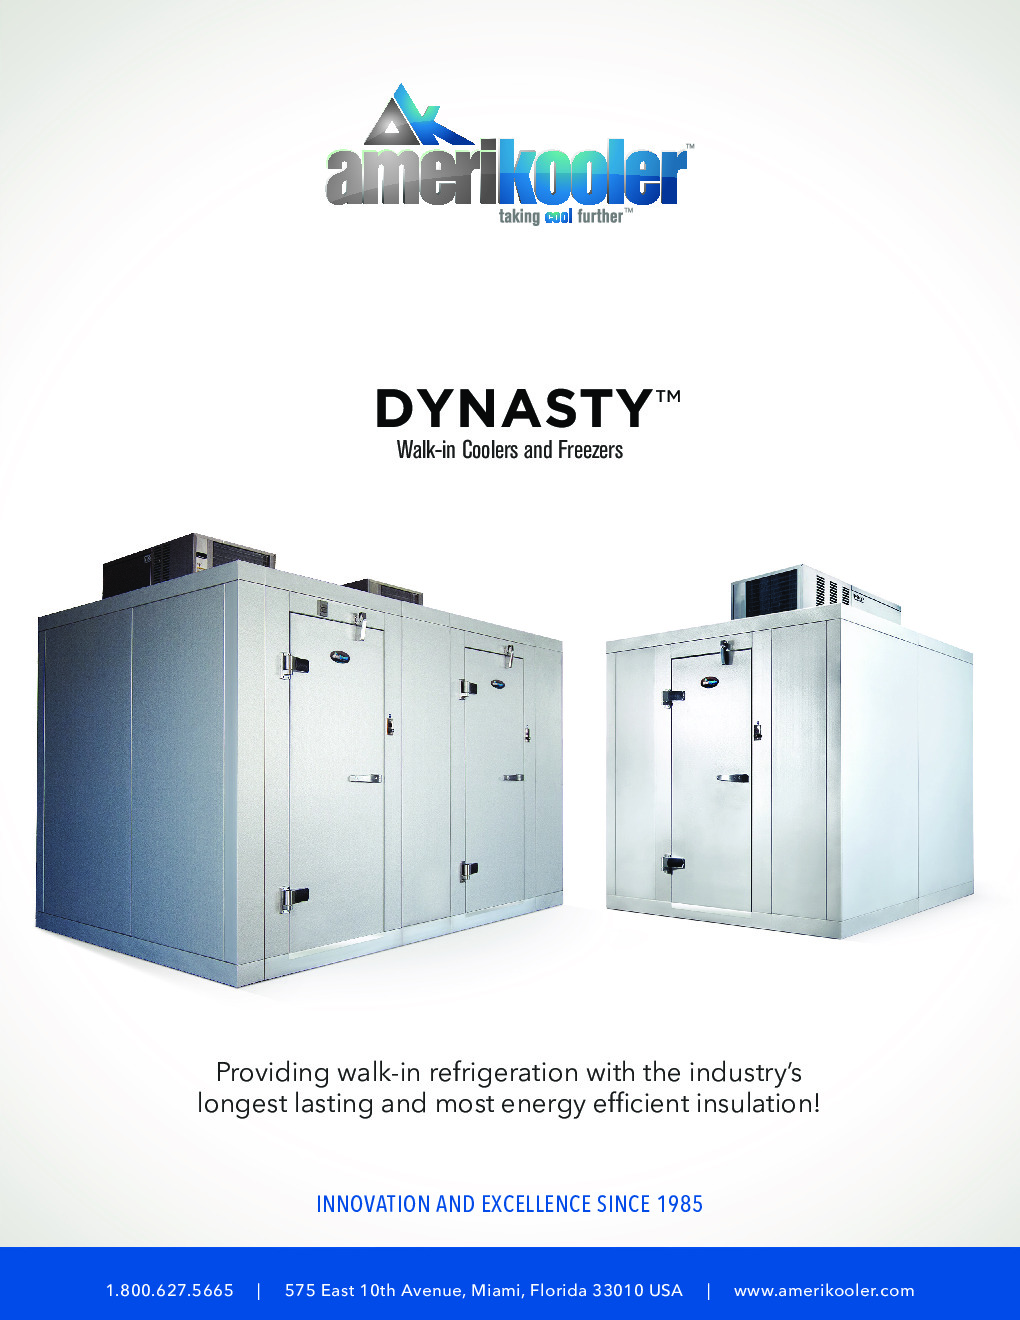 AmeriKooler DW061377F-4/9-SC 6' X 13' Walk-In Cooler, 9' L Cooler with Floor and 4' L Freezer, Self Contained